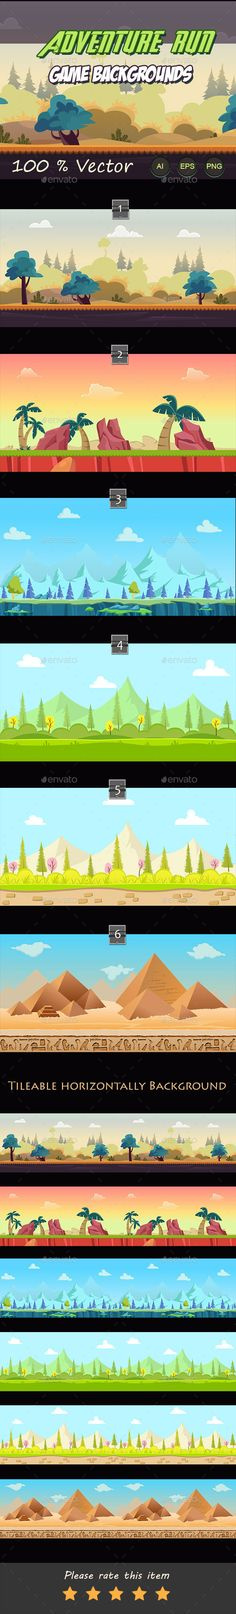 Adventure run game backgrounds Download here: https://graphicriver.net/item/adventure-run-game-backgrounds/11851723?ref=KlitVogli